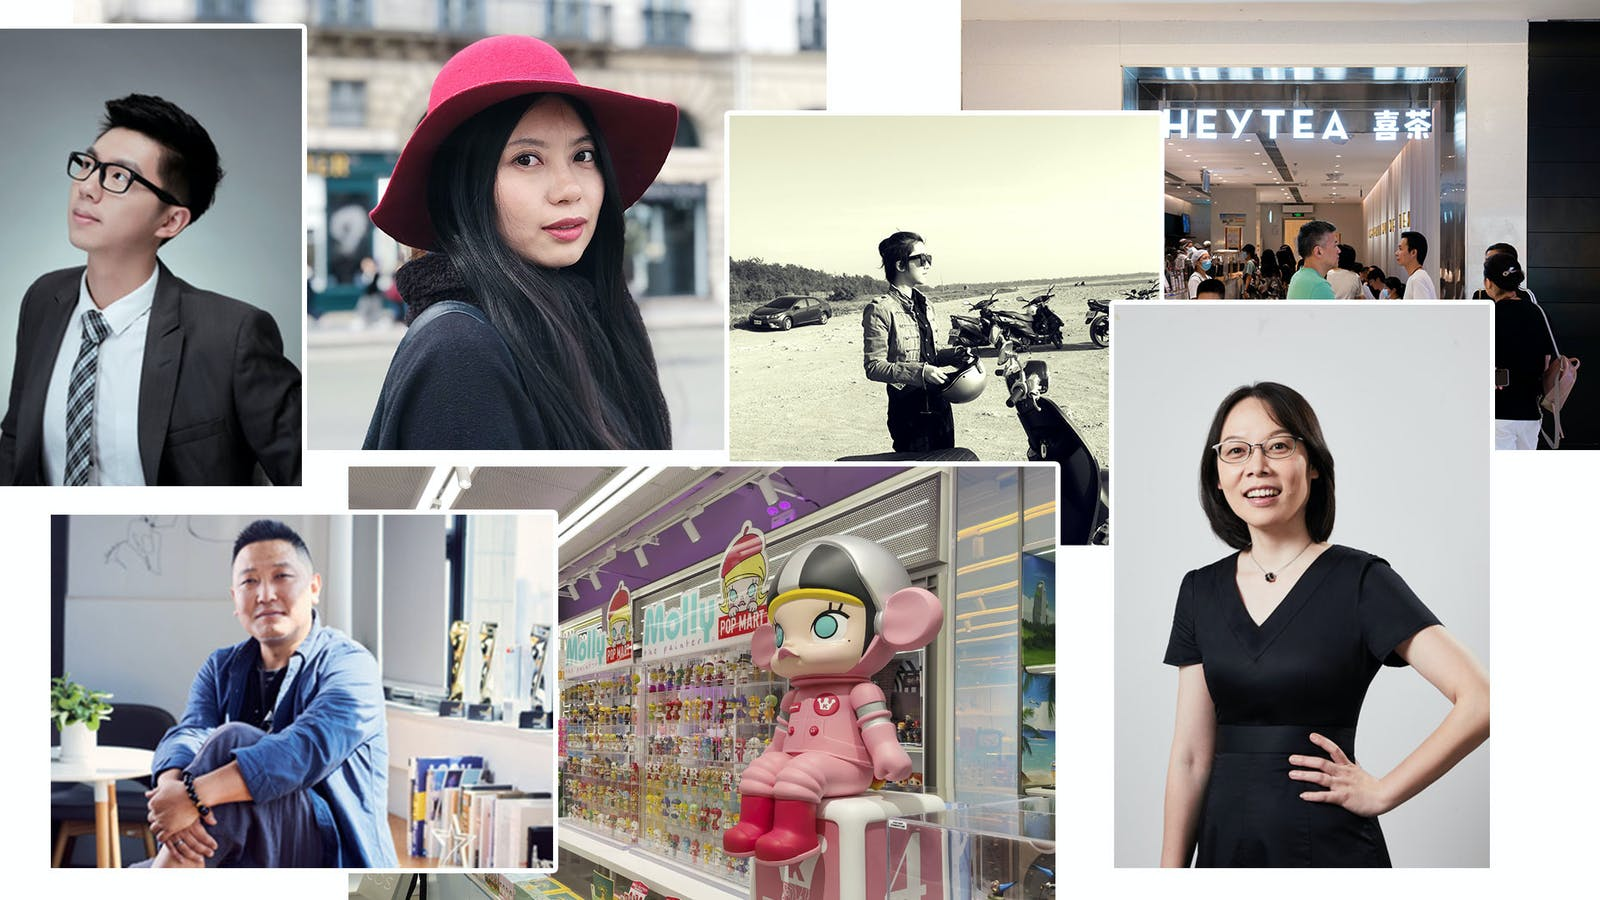 Clockwise from top-left: Moody CEO,  Ci Ran; PMPM co-founder Wen Tzu; PMPM co-founder Shan Shuo; customers at a HEYTEA store in Chongqing, China (AP); Ubras founder and CEO, Tou Yaqian; a Pop Mart store in Shanghai (AP); Chicecream CEO, Lin Sheng.